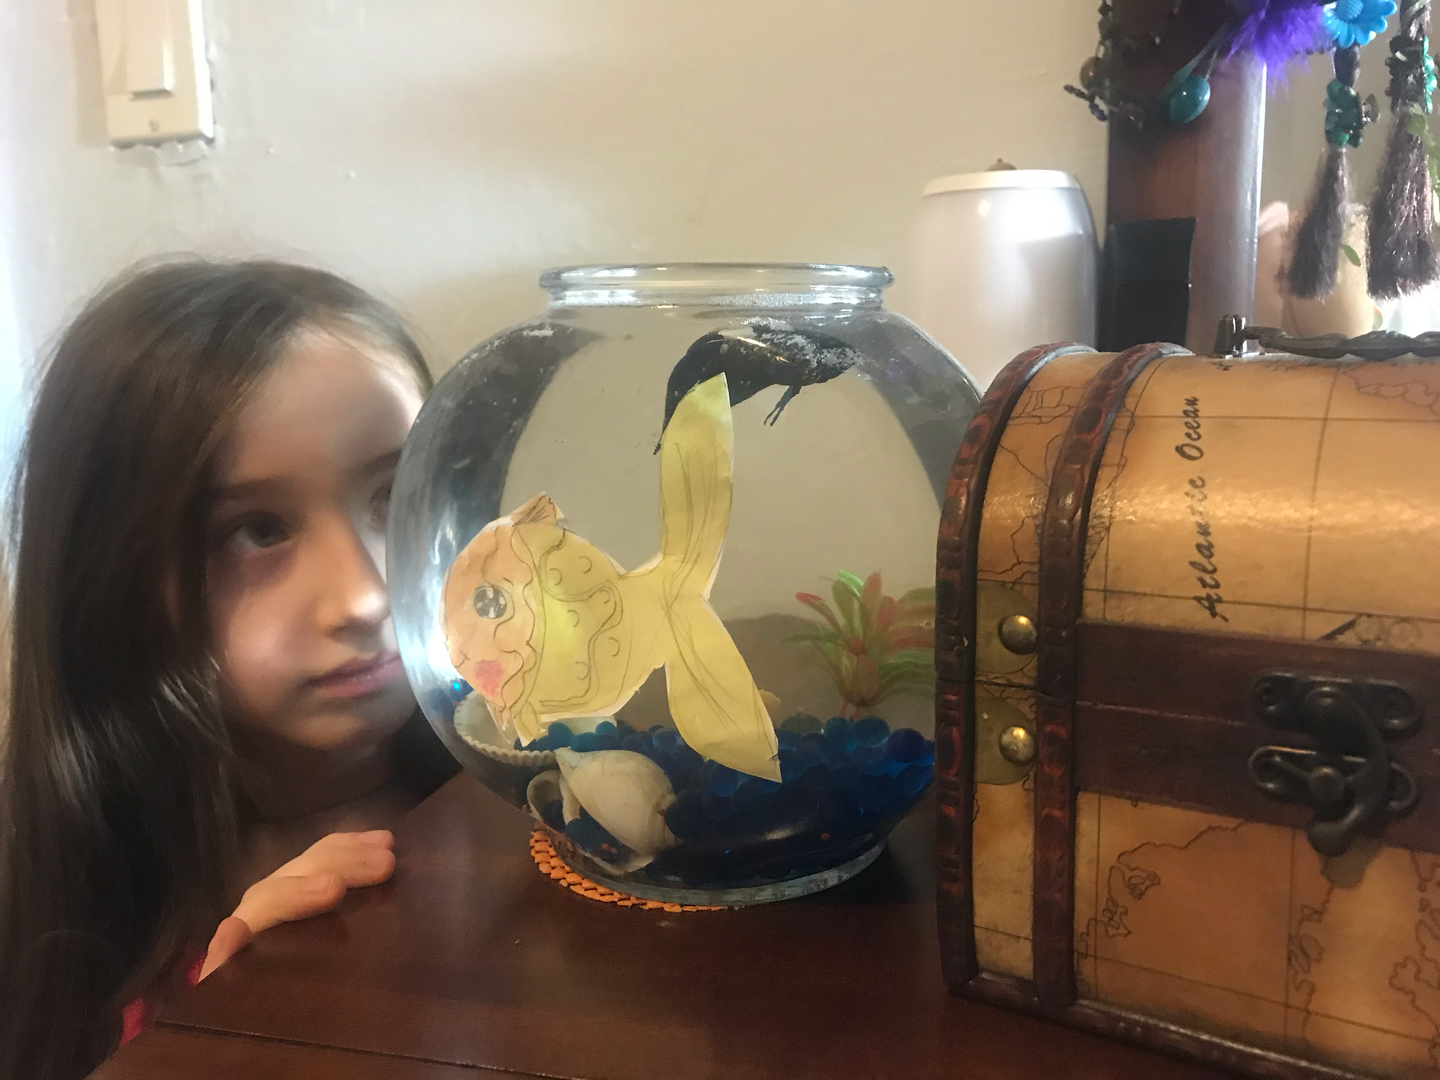 a chid watches the fish in the tank